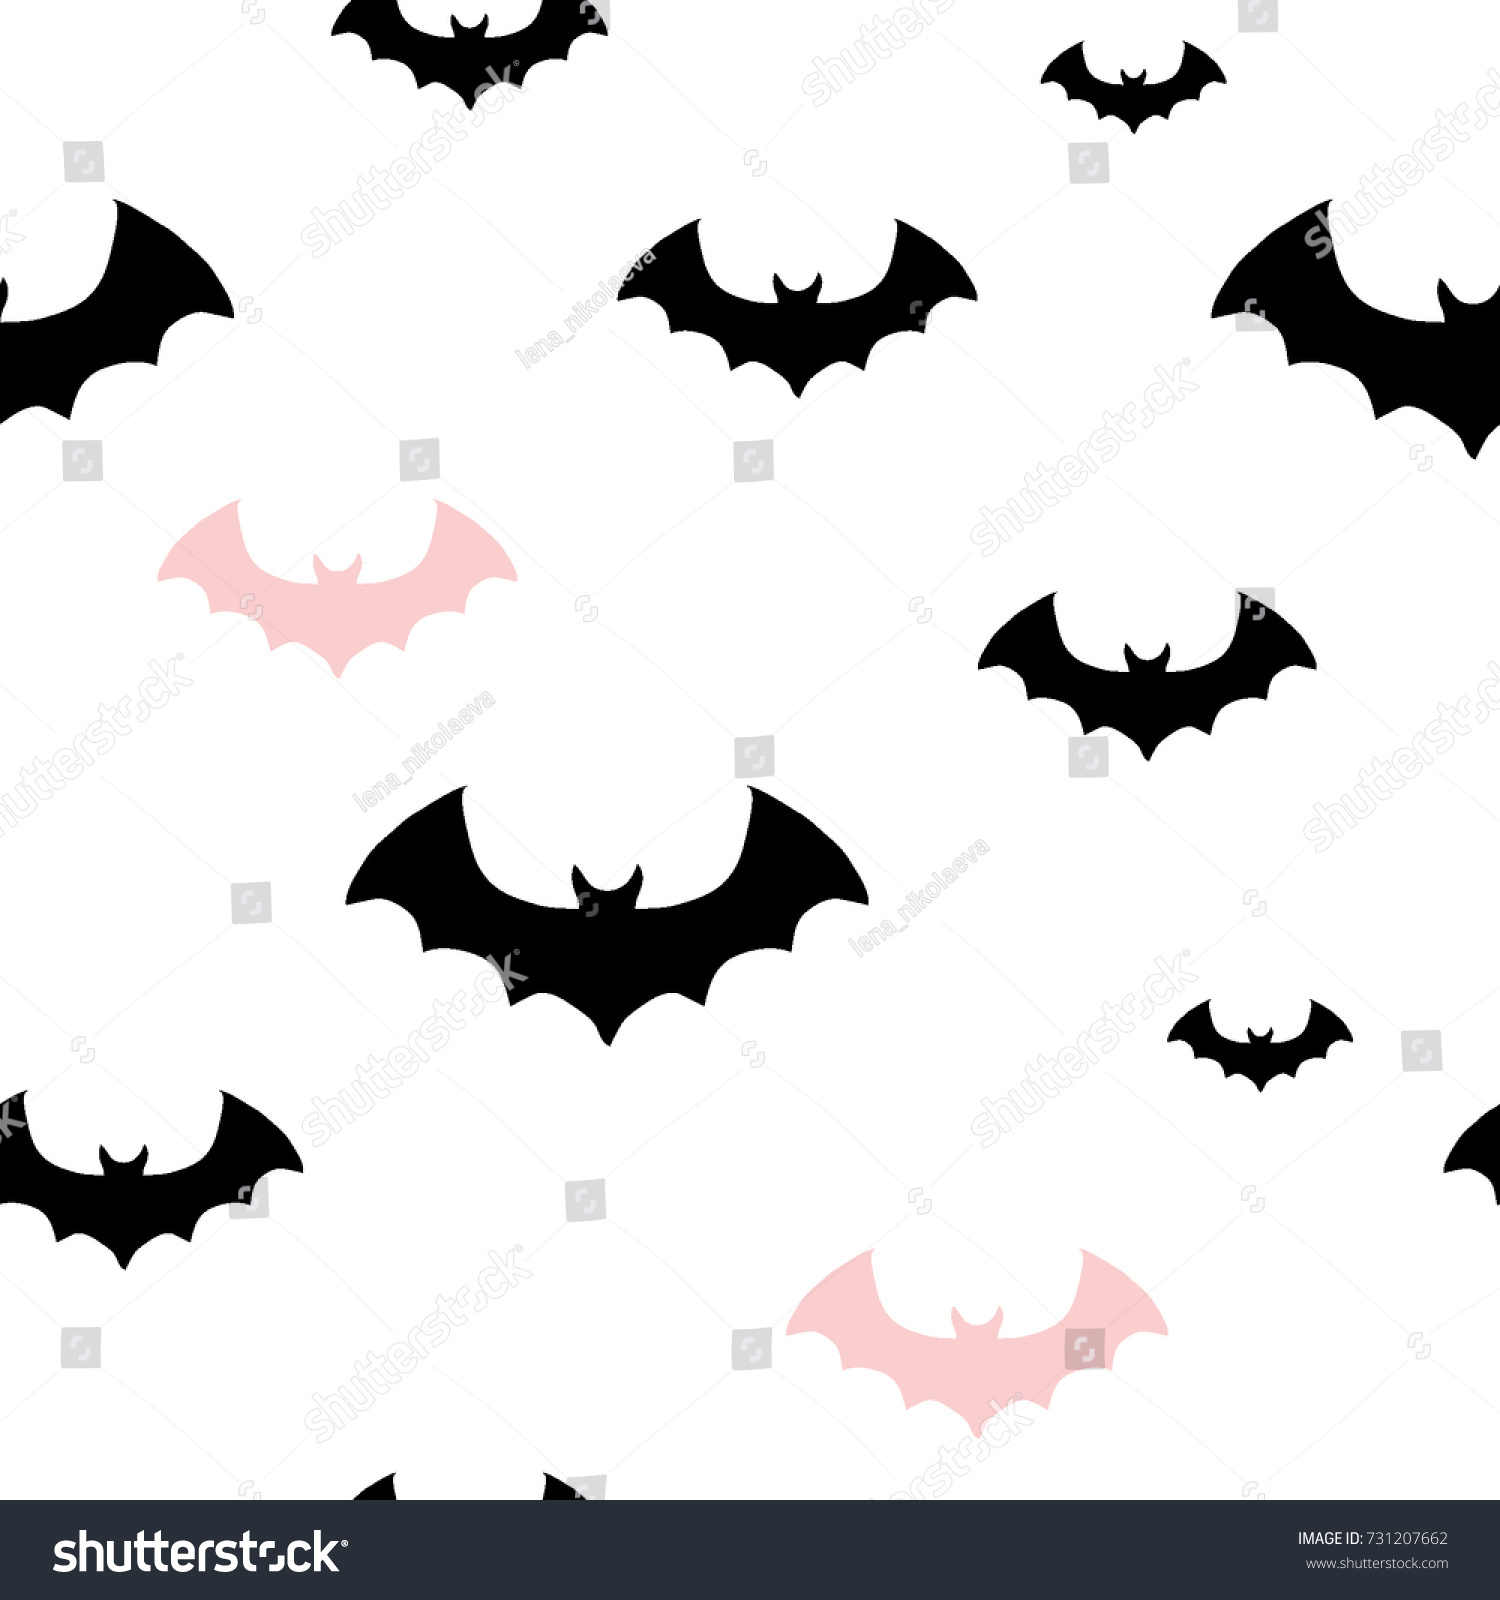 Amazing Wallpaper Halloween Pink - stock-vector-halloween-pattern-with-black-and-pink-bats-texture-for-wallpaper-pattern-fills-web-page-731207662  Graphic_182652.jpg